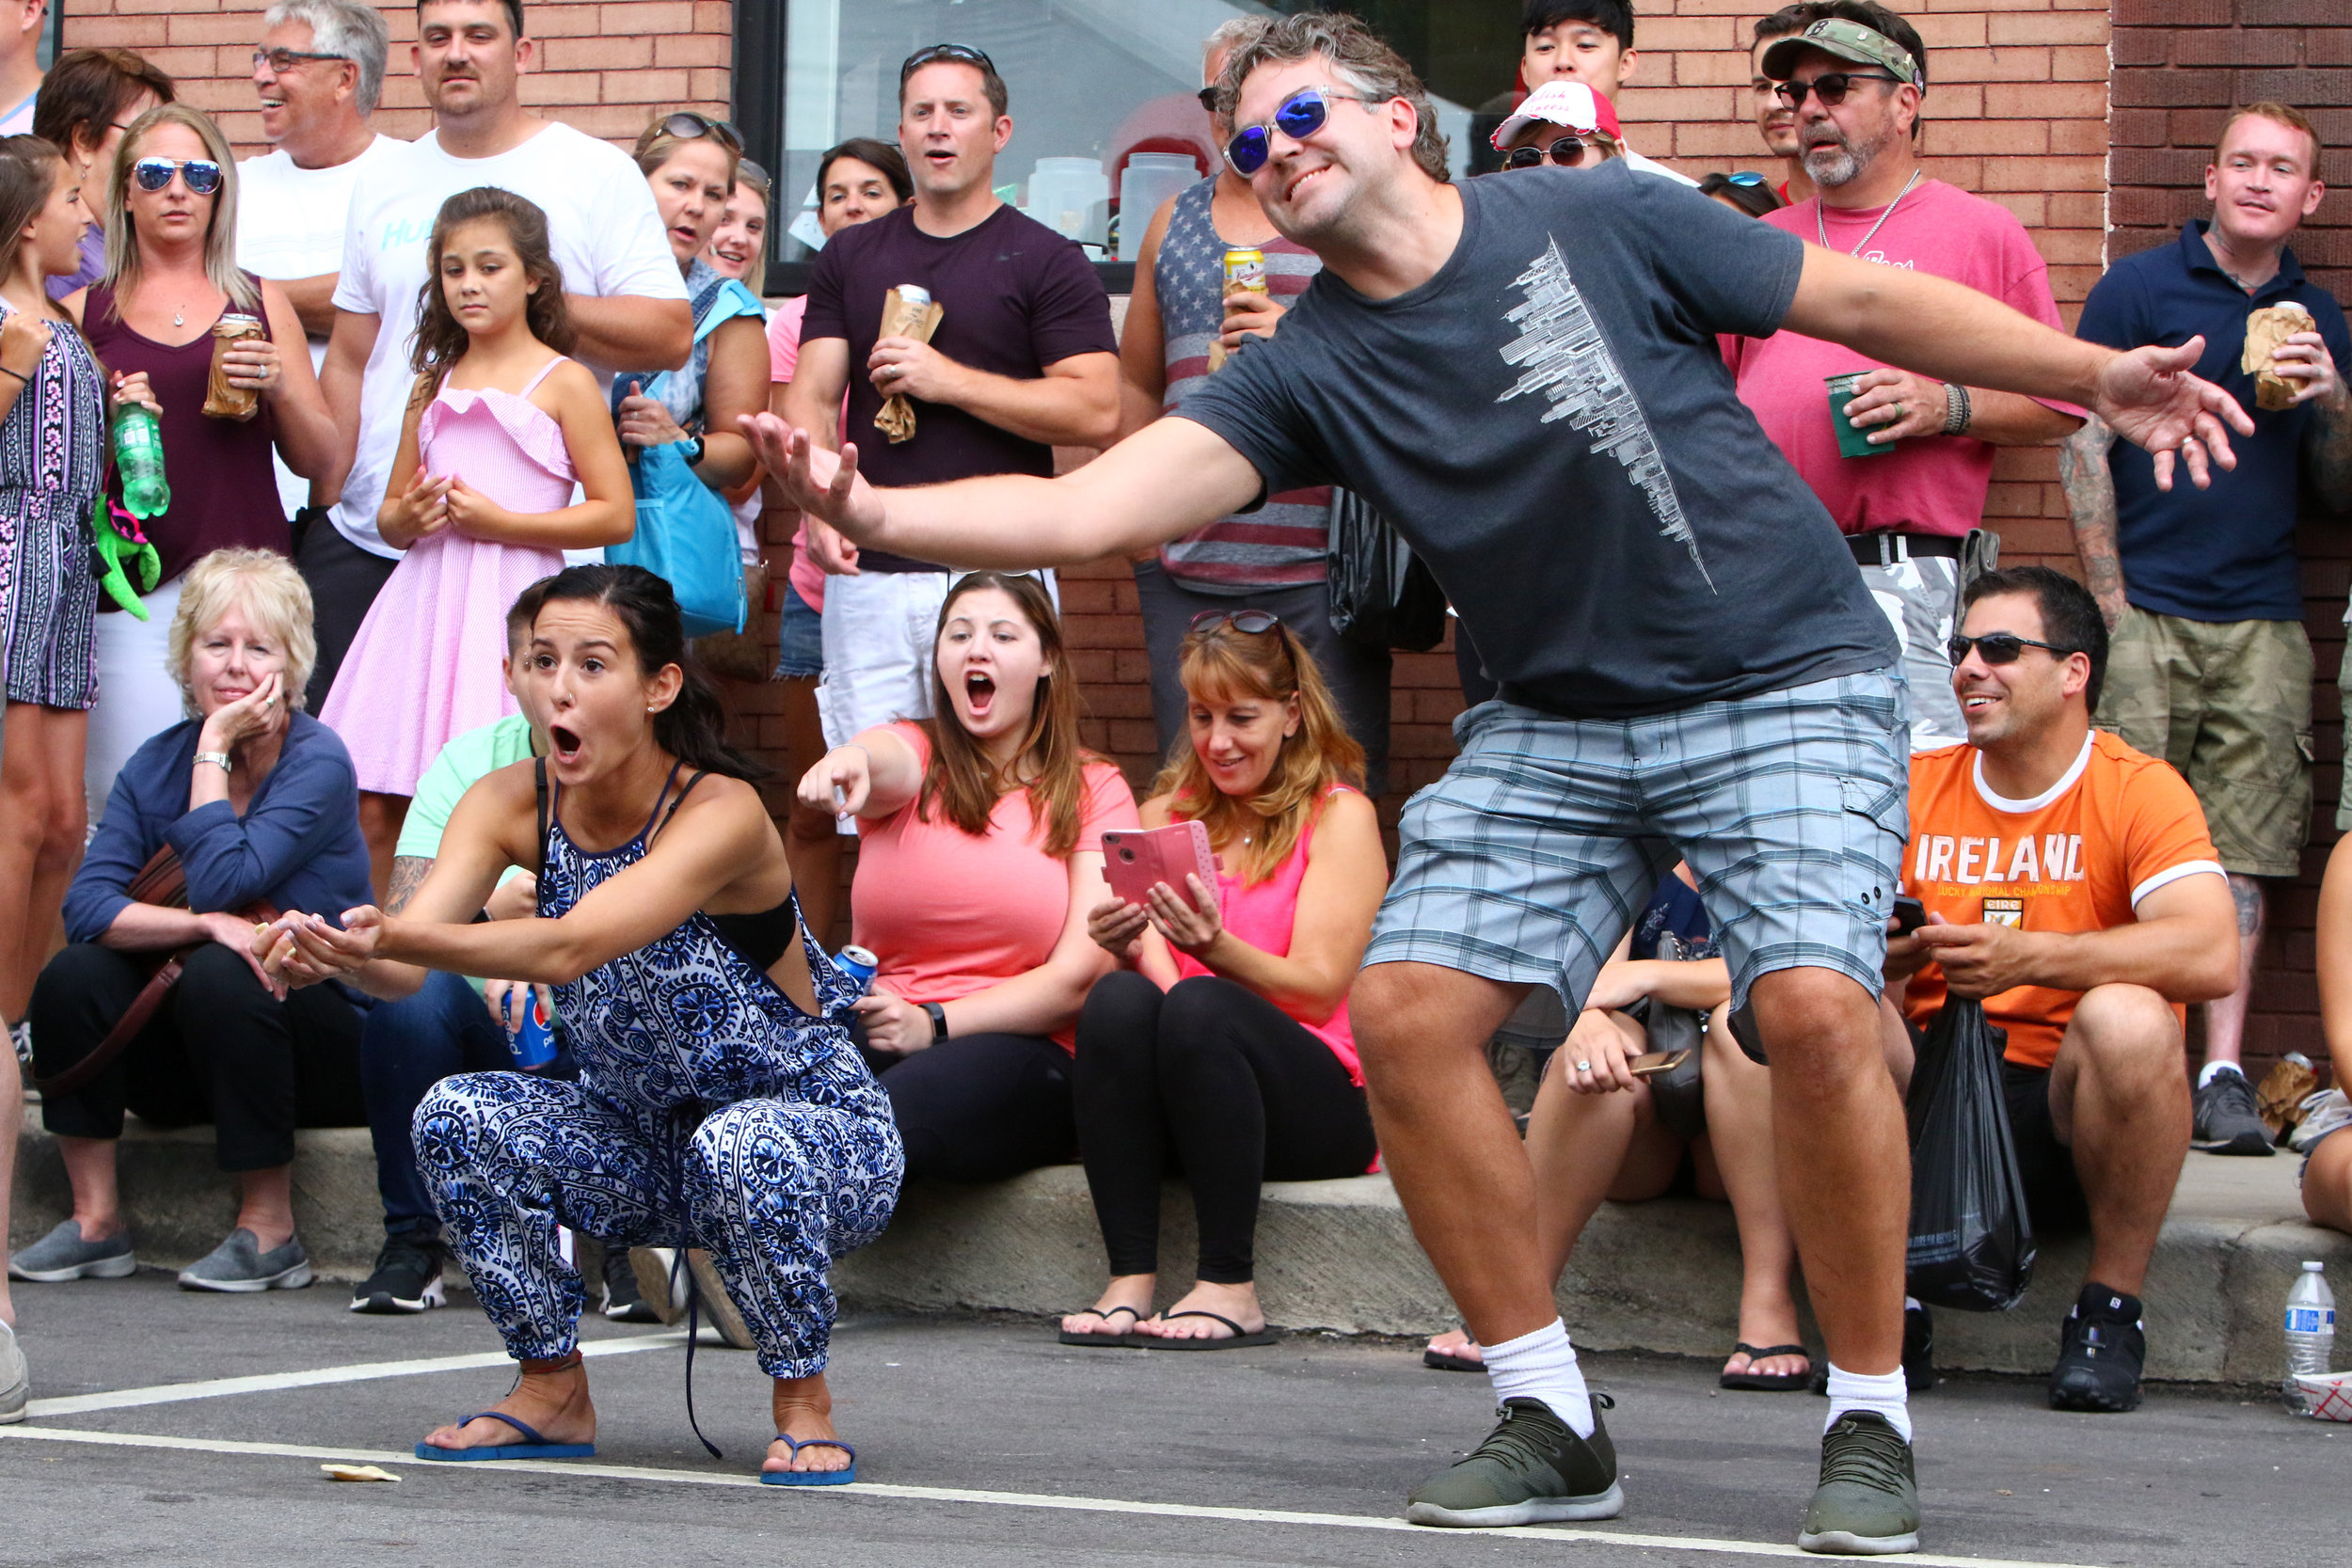 Natalia Rys, left, of Chicago, reacts after catching her pierogi and successfully winning Pierogi Fest's pierogi toss Sunday in Whiting. Rys was won with her partner, Rolando Araujo, also of Chicago.